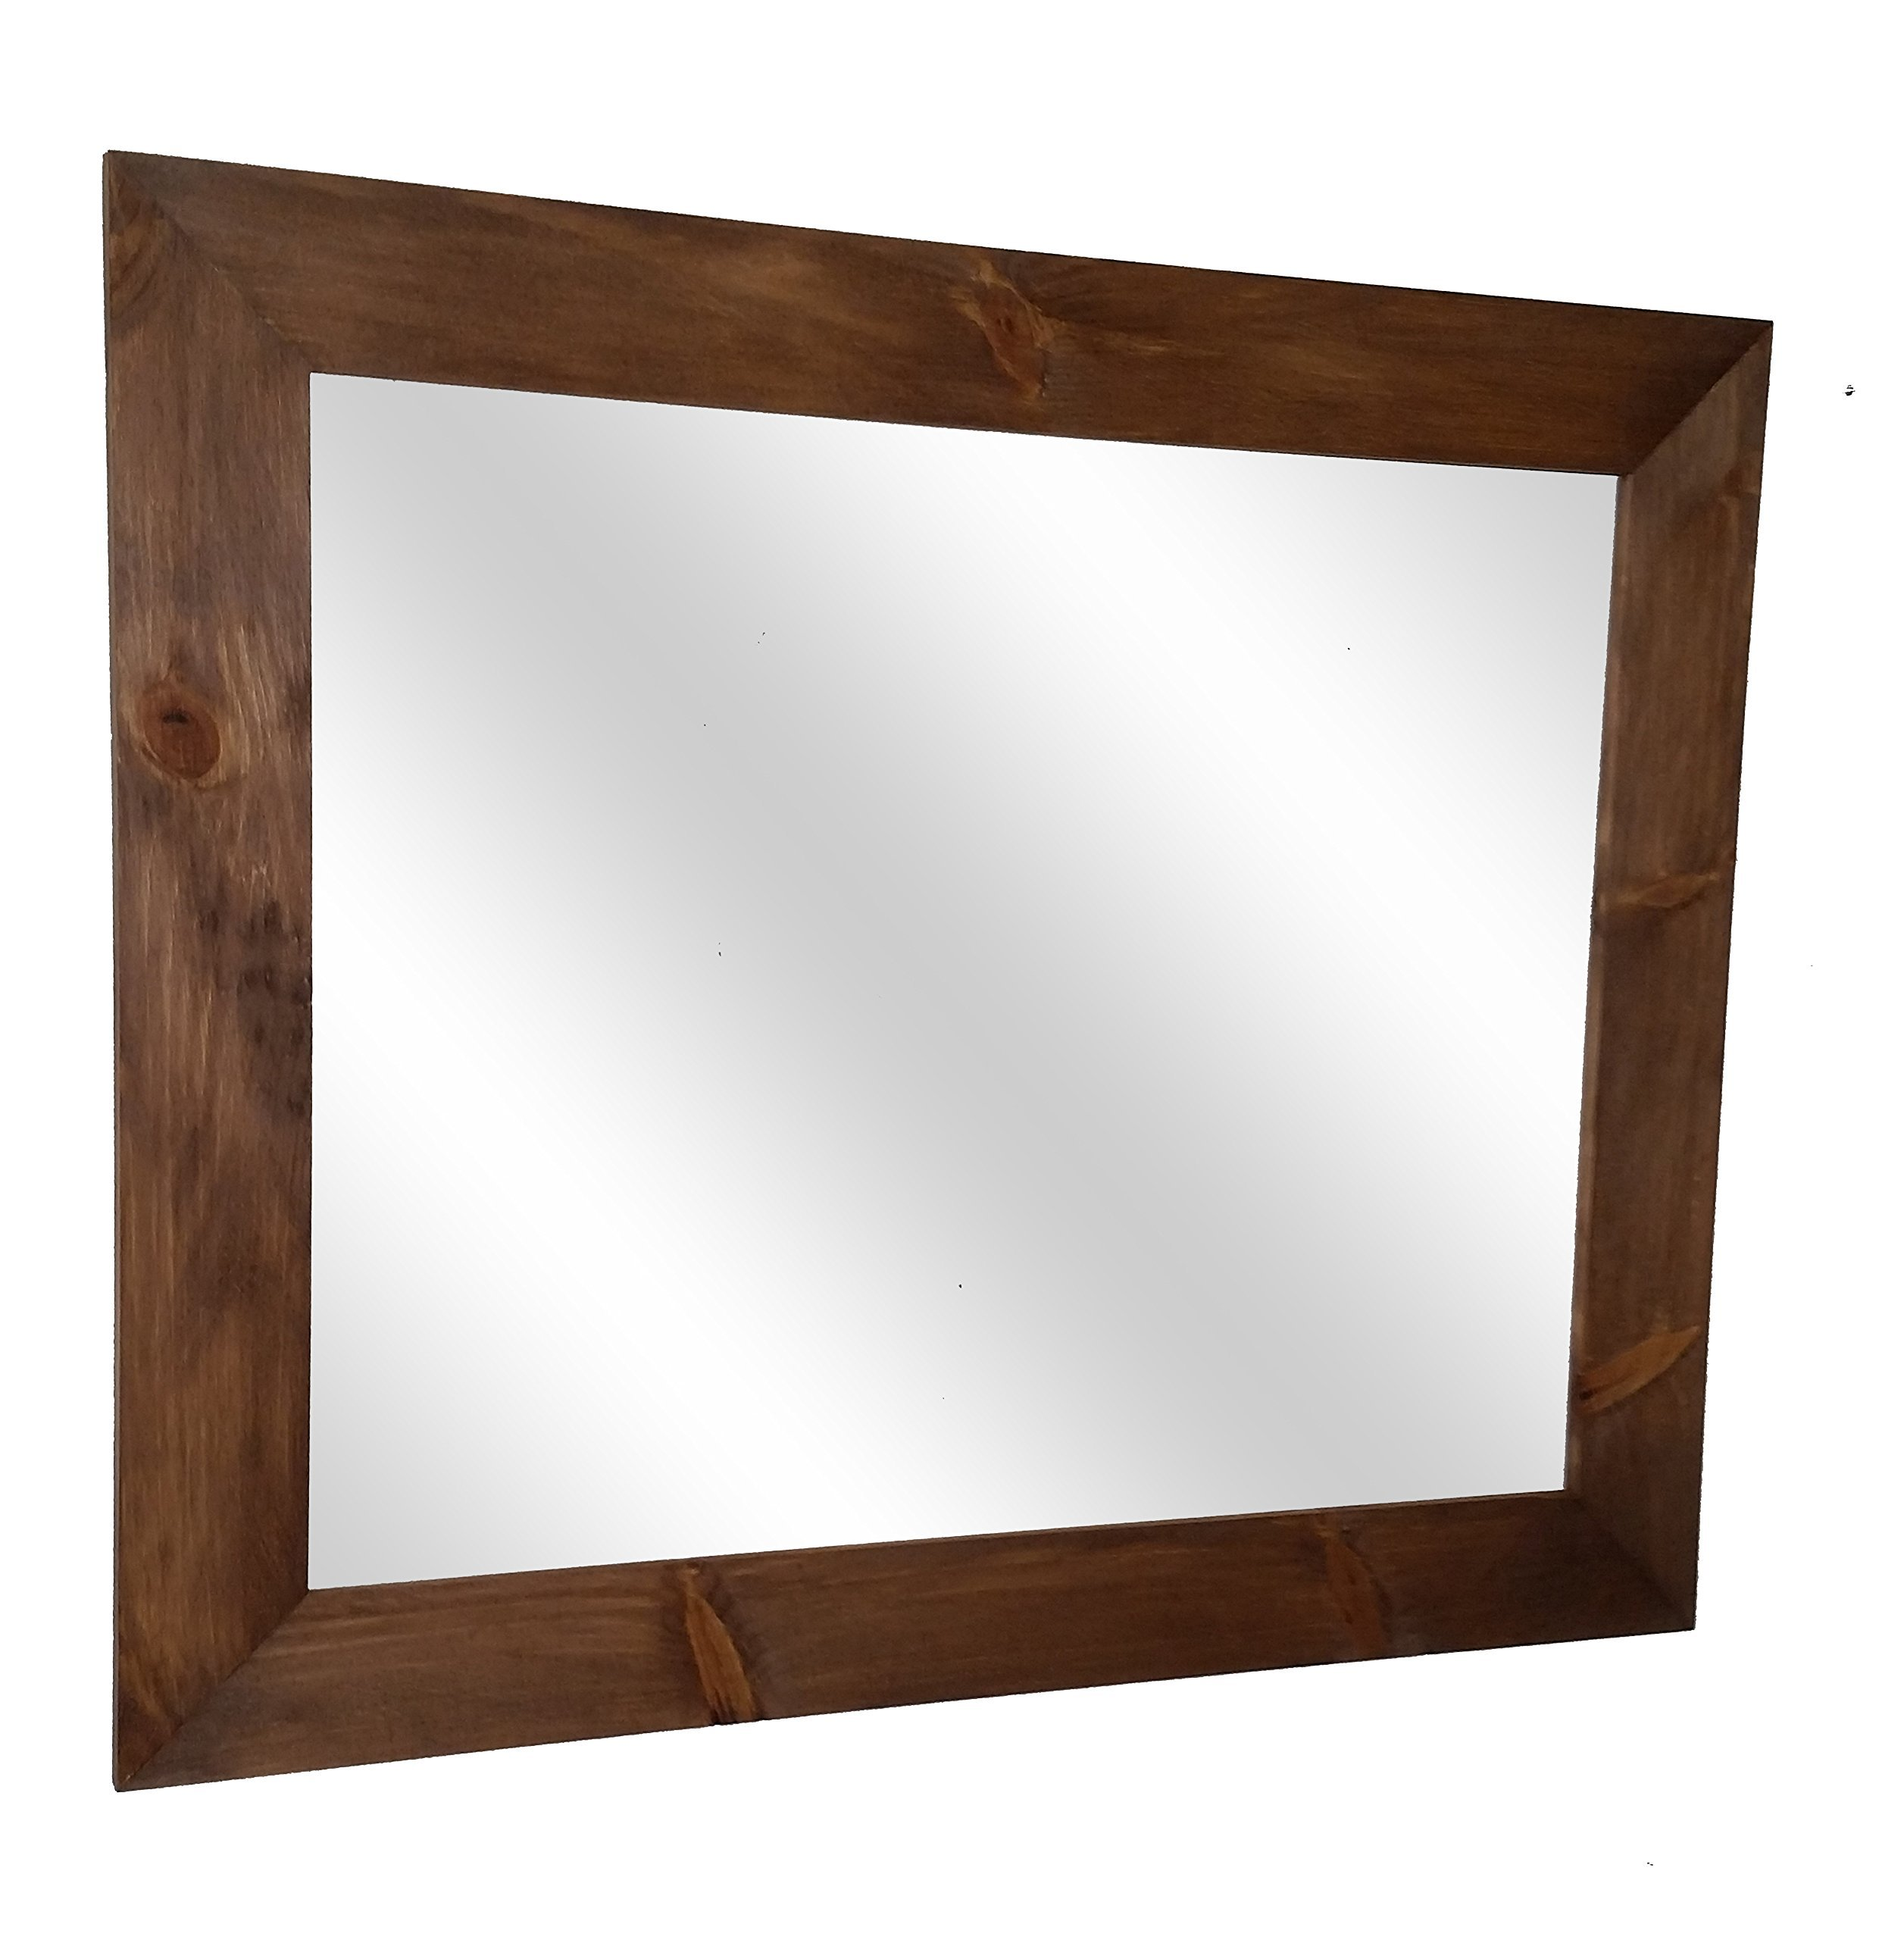 Shiplap Mirror 36 x 30 Horizontal Early American Stain Reclaimed Wood Mirror - Large Wall Mirror - Rustic Modern Home - Home Decor - Mirror - Housewares - Woodwork - Frame by Renewed Decor